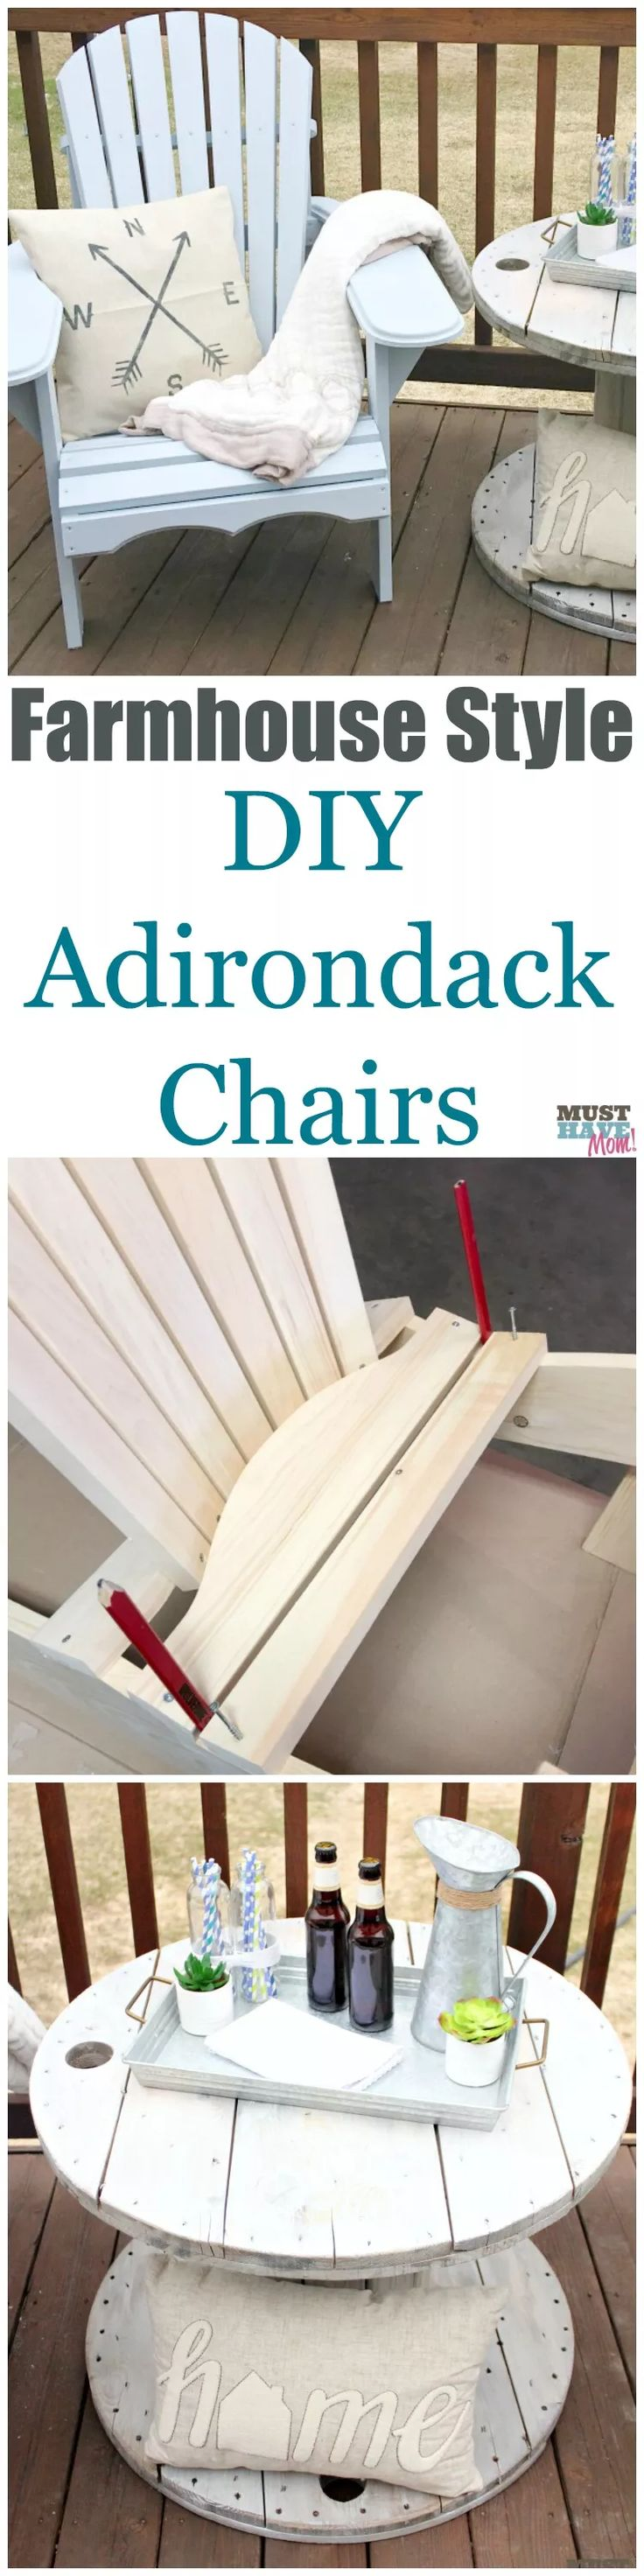 How to DIY farmhouse style adirondack chairs. Build them, paint them and style them! She shows you how. Bring farmhouse decor outdoors! ad